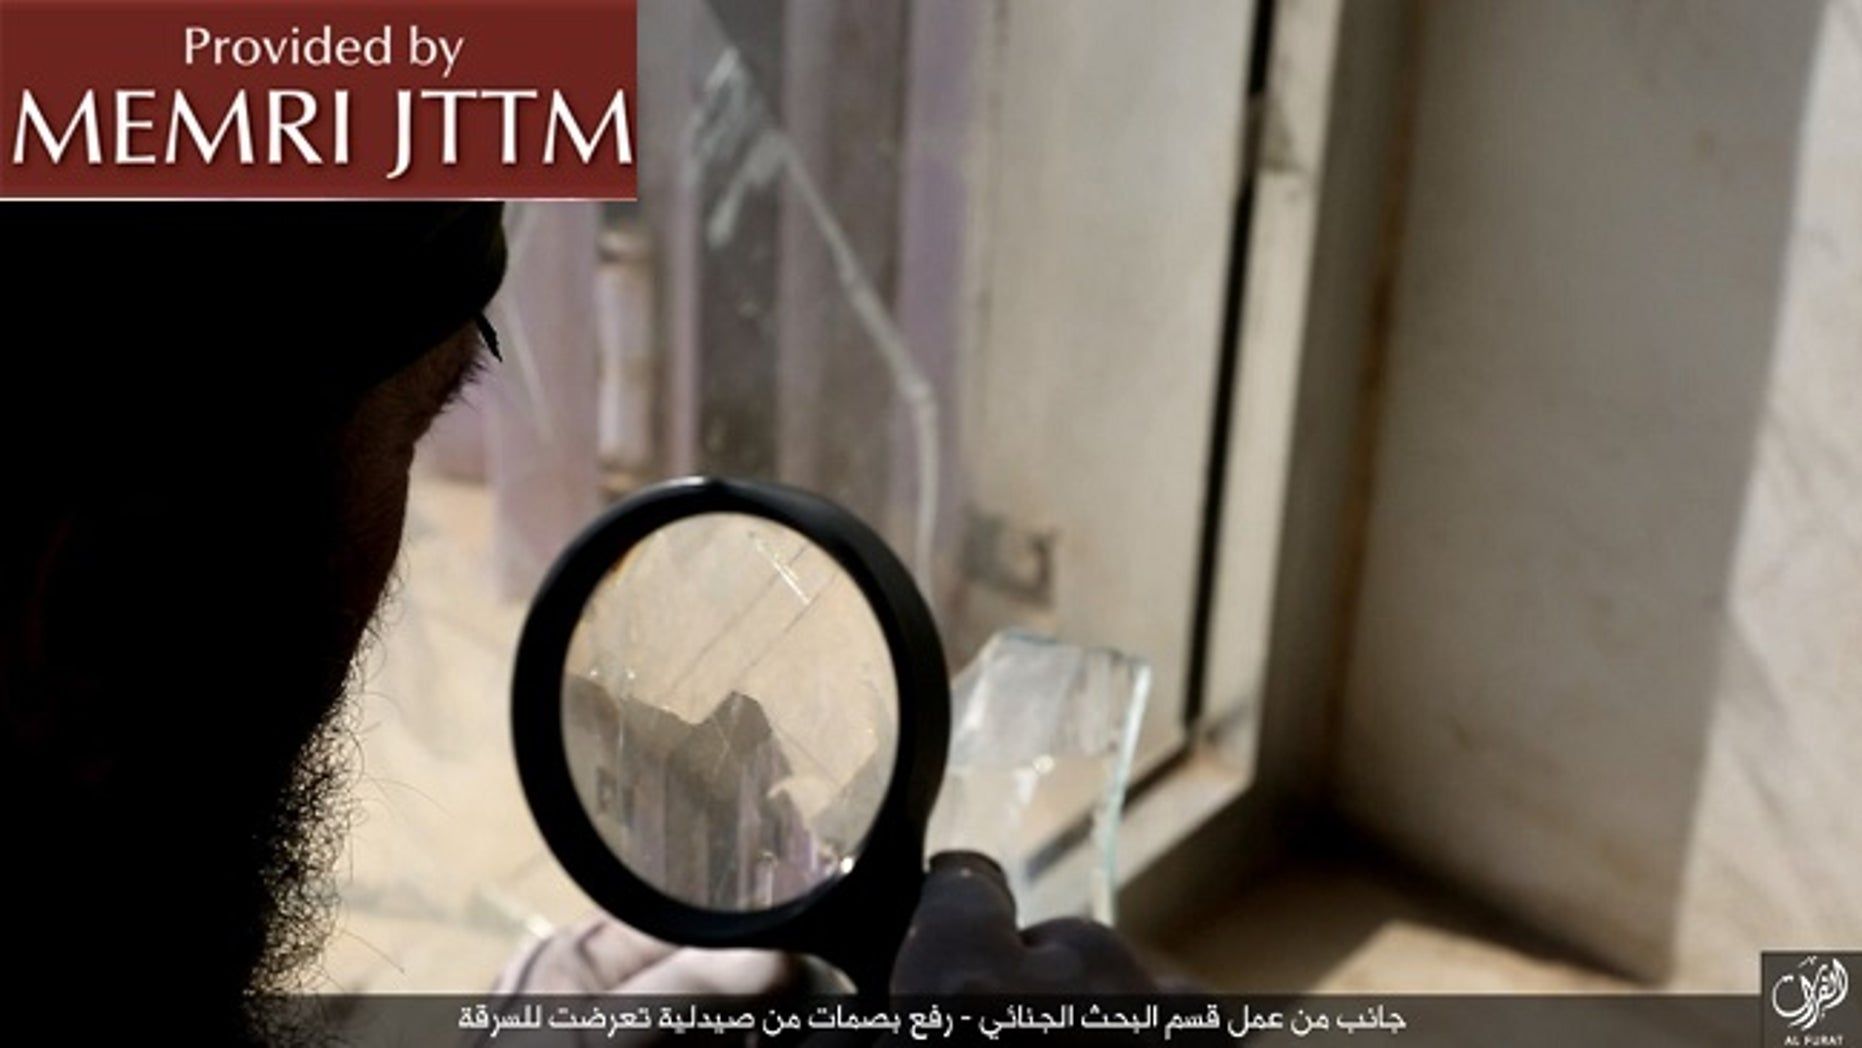 An image from an ISIS propoganda pictorial showing a new forensics division.